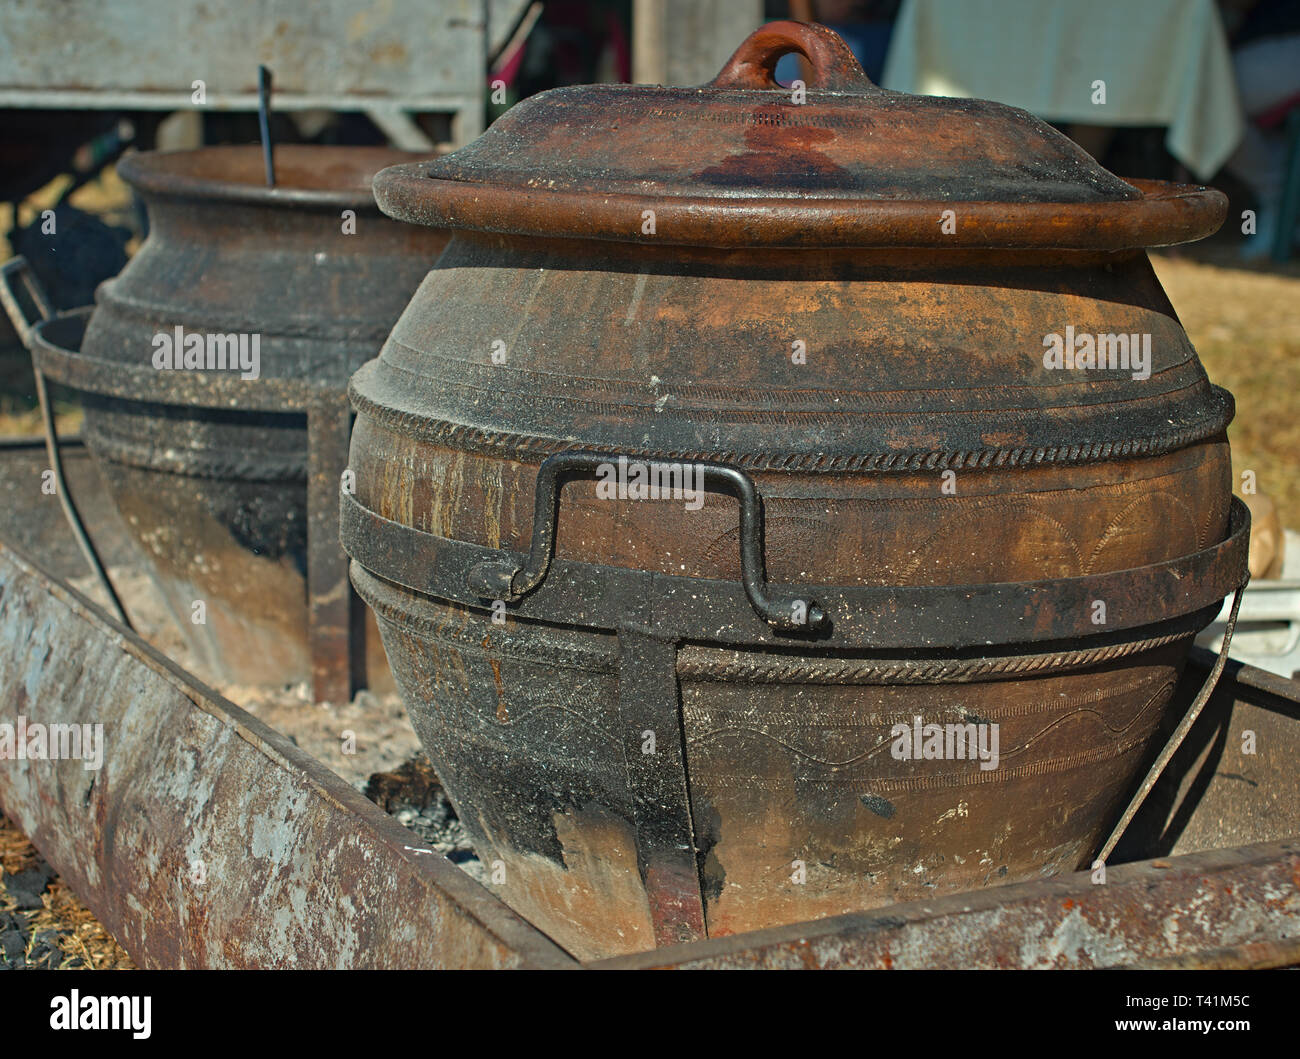 Two old traditional pots for cooking outdoor Stock Photo